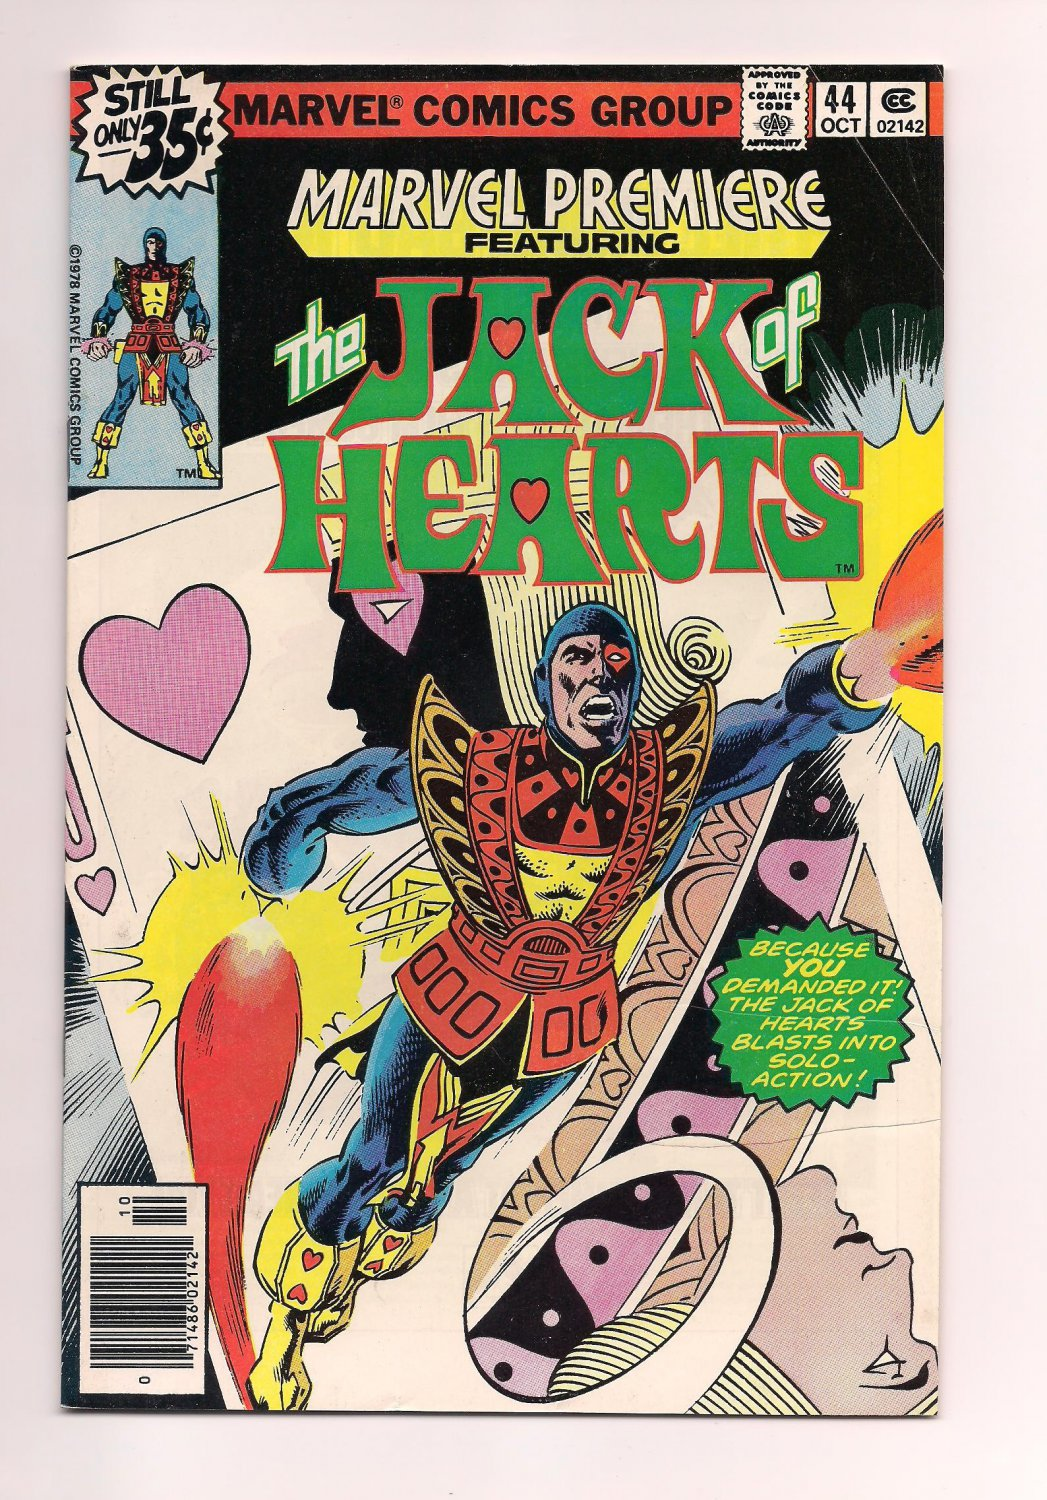 Marvel Premiere #44 (1978) vf or better comic (sh3) featuring Jack of Hearts